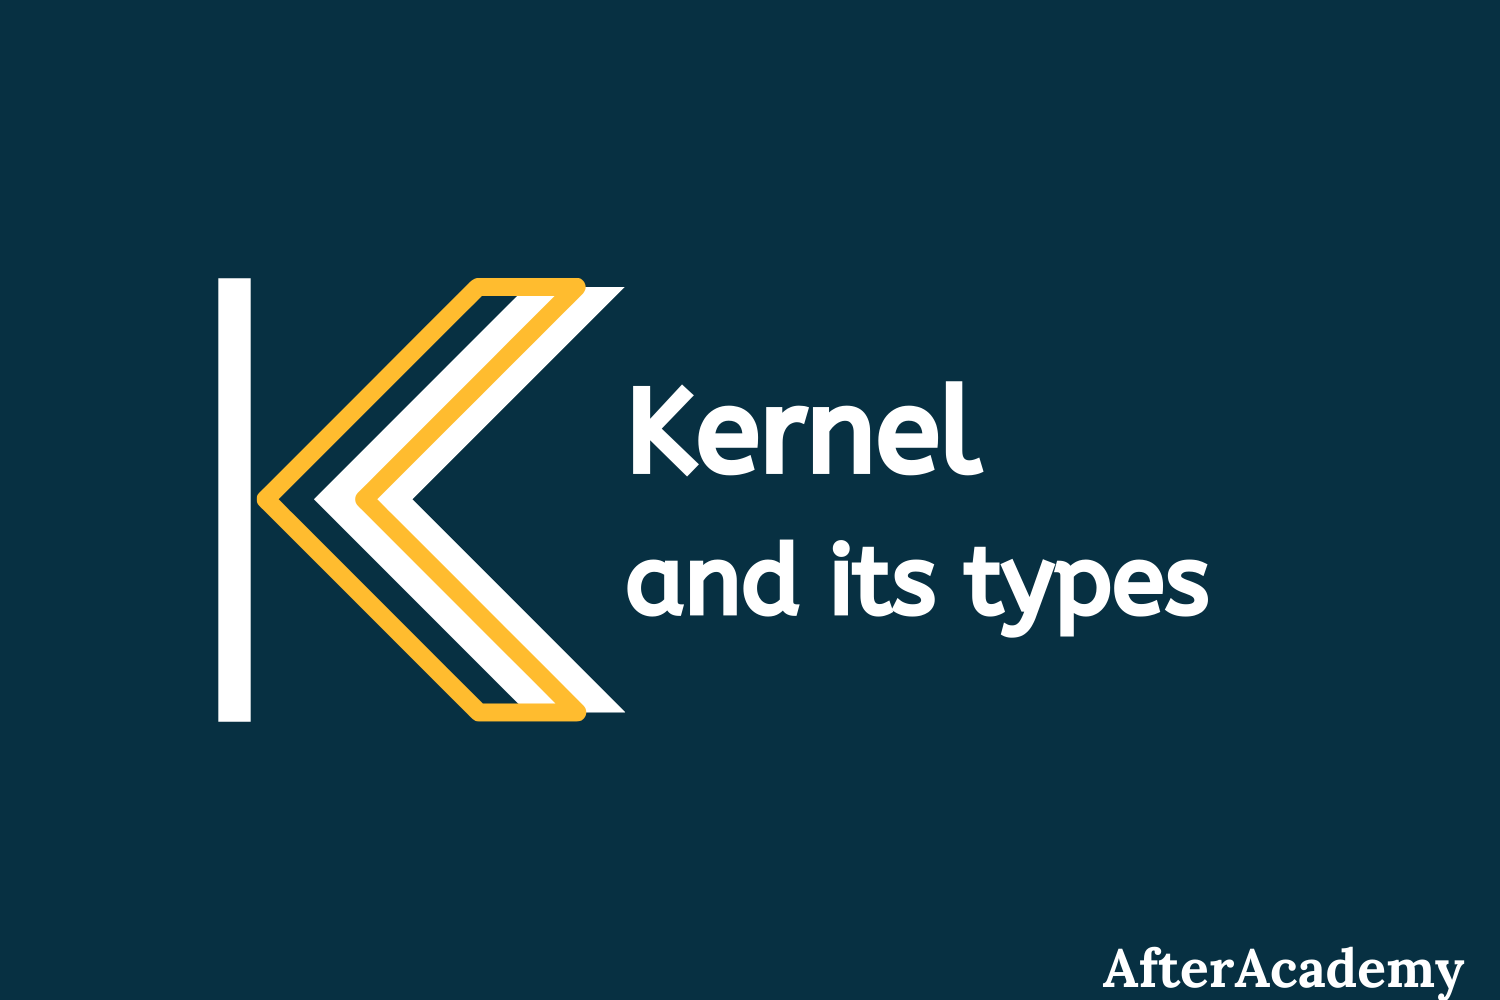 What is Kernel in Operating System and what are the various types of Kernel?